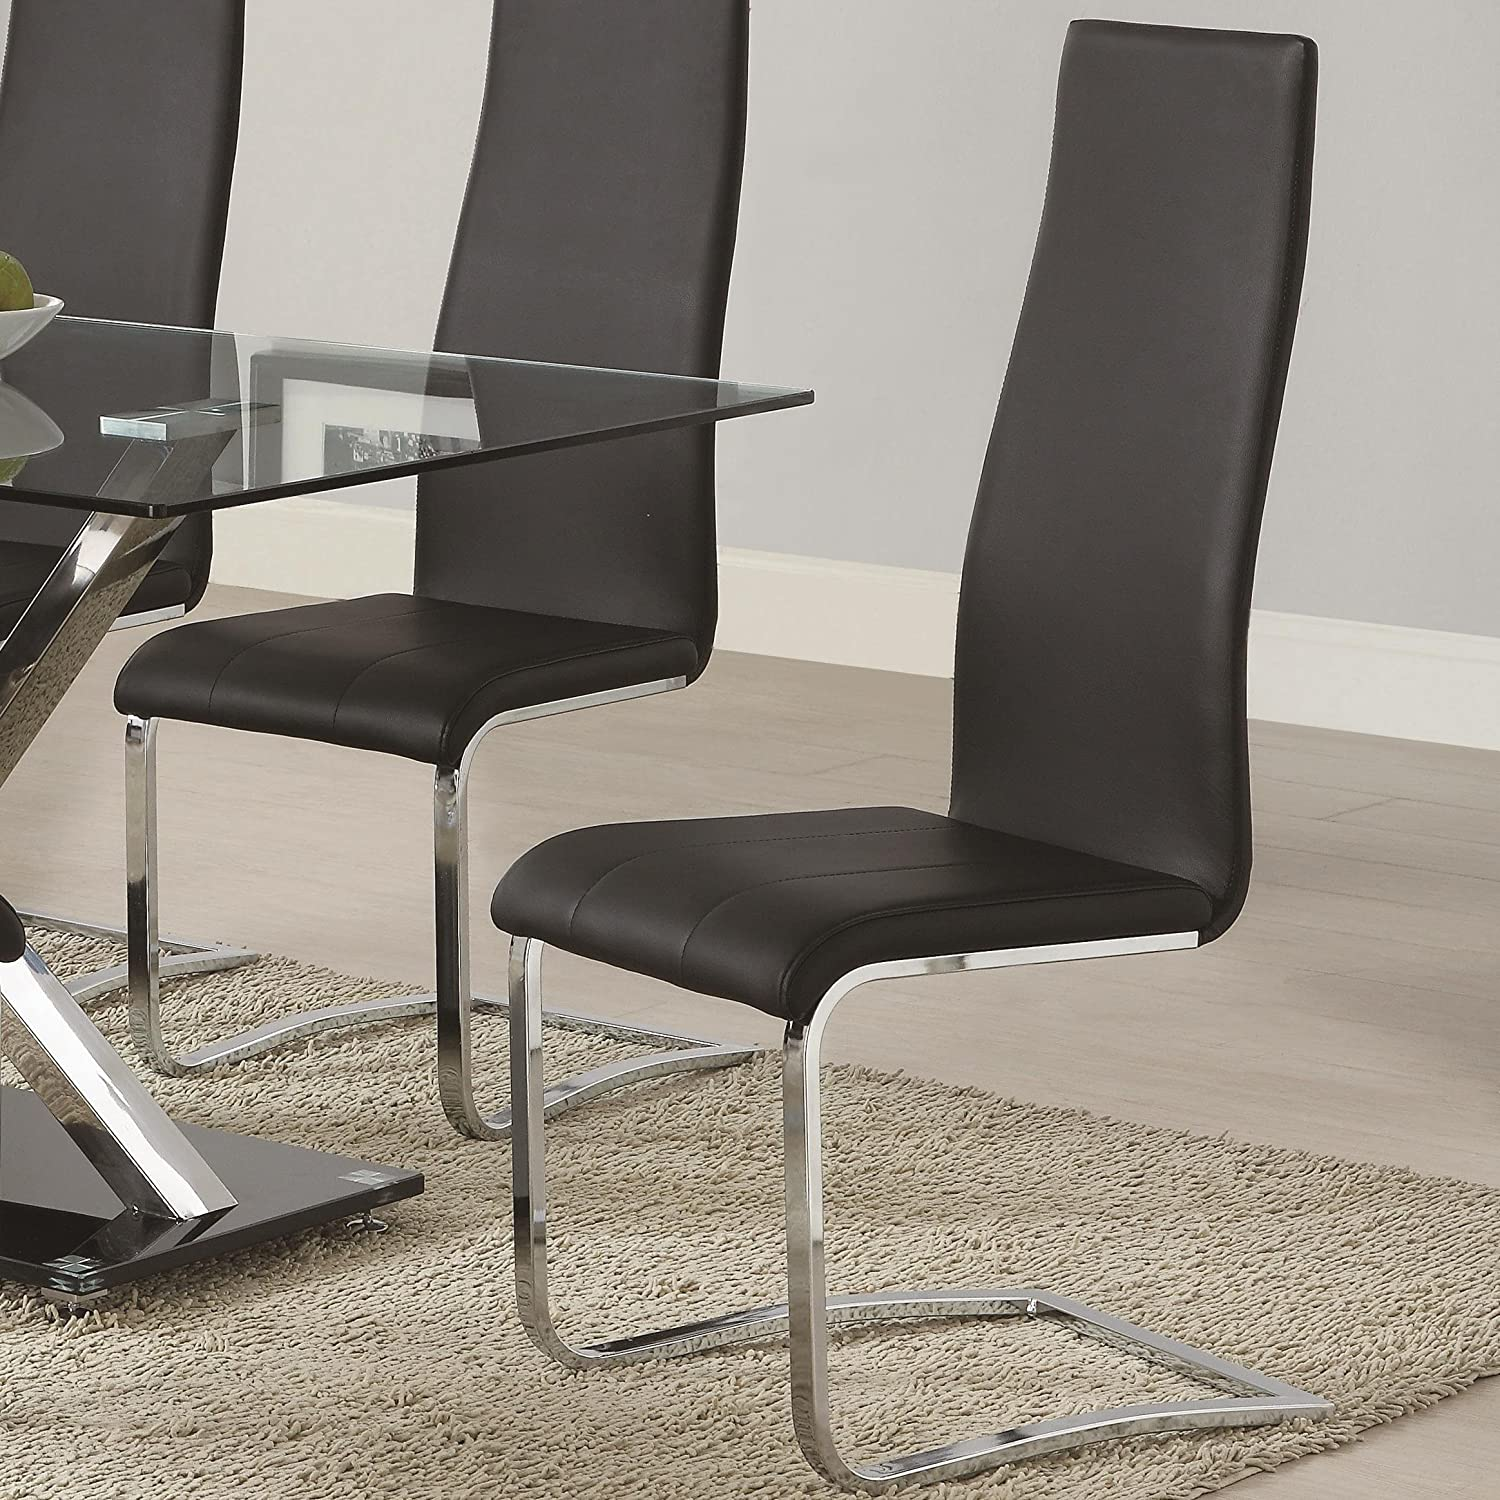 Amazoncom Coaster BLK Dining Chair Black Faux Leather - Contemporary wooden dining chairs